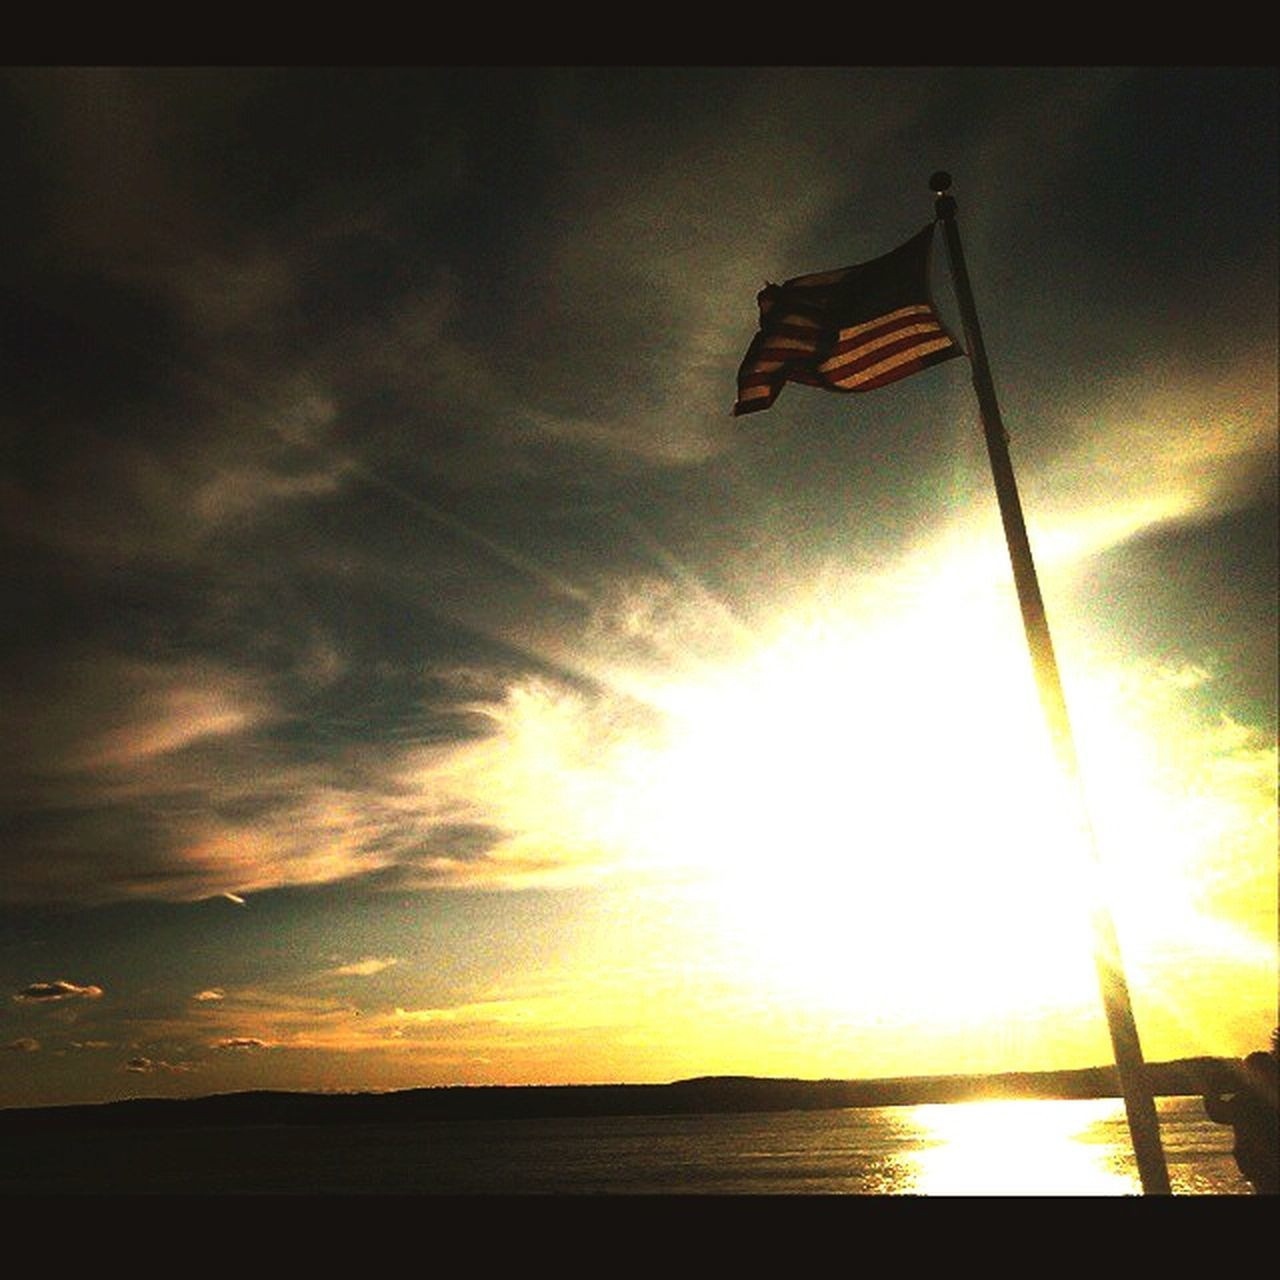 flag, patriotism, flag pole, sunset, sky, wind, sea, pride, no people, low angle view, cloud - sky, outdoors, stars and stripes, nature, water, horizon over water, beauty in nature, day